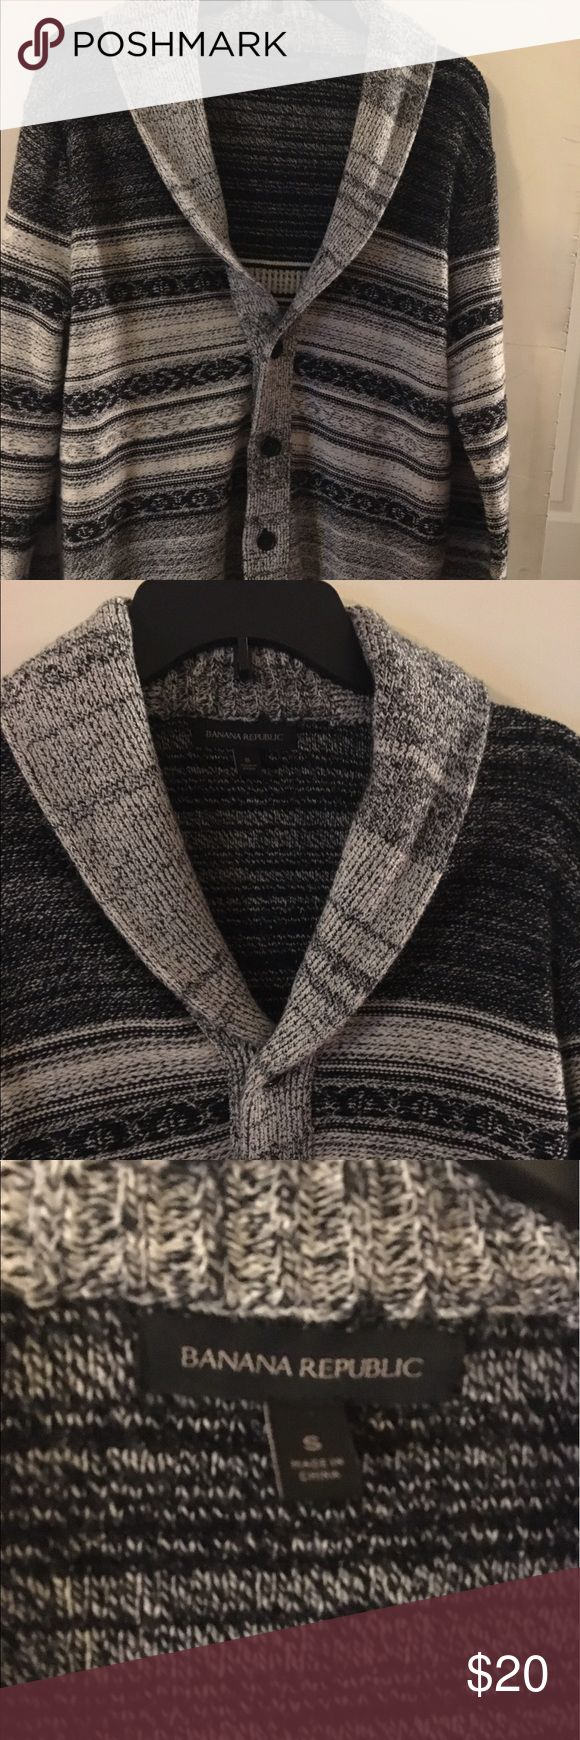 Mens Banana Republic sweater NWOT small men's sweater or M/L women's sweater. Thick and cozy, never worn. Banana Republic Sweaters Cardigan